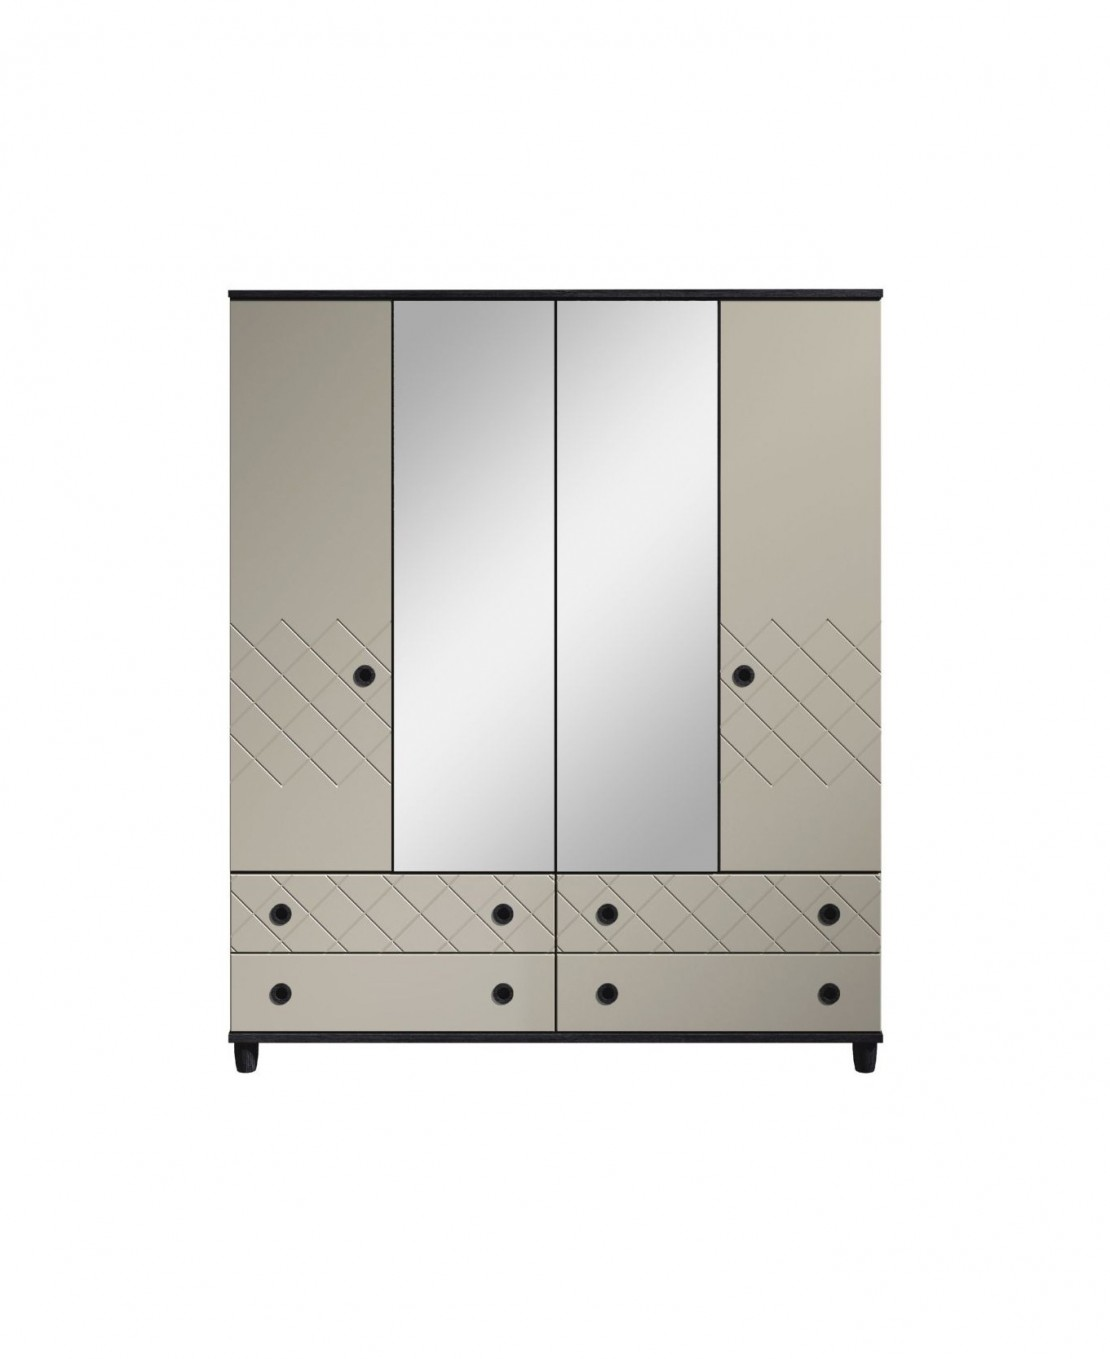 /_images/product-photos/kt-furniture-geo-4-door-mirrored-gents-robe-matt-grey-with-black-oak-carcas-a.jpg